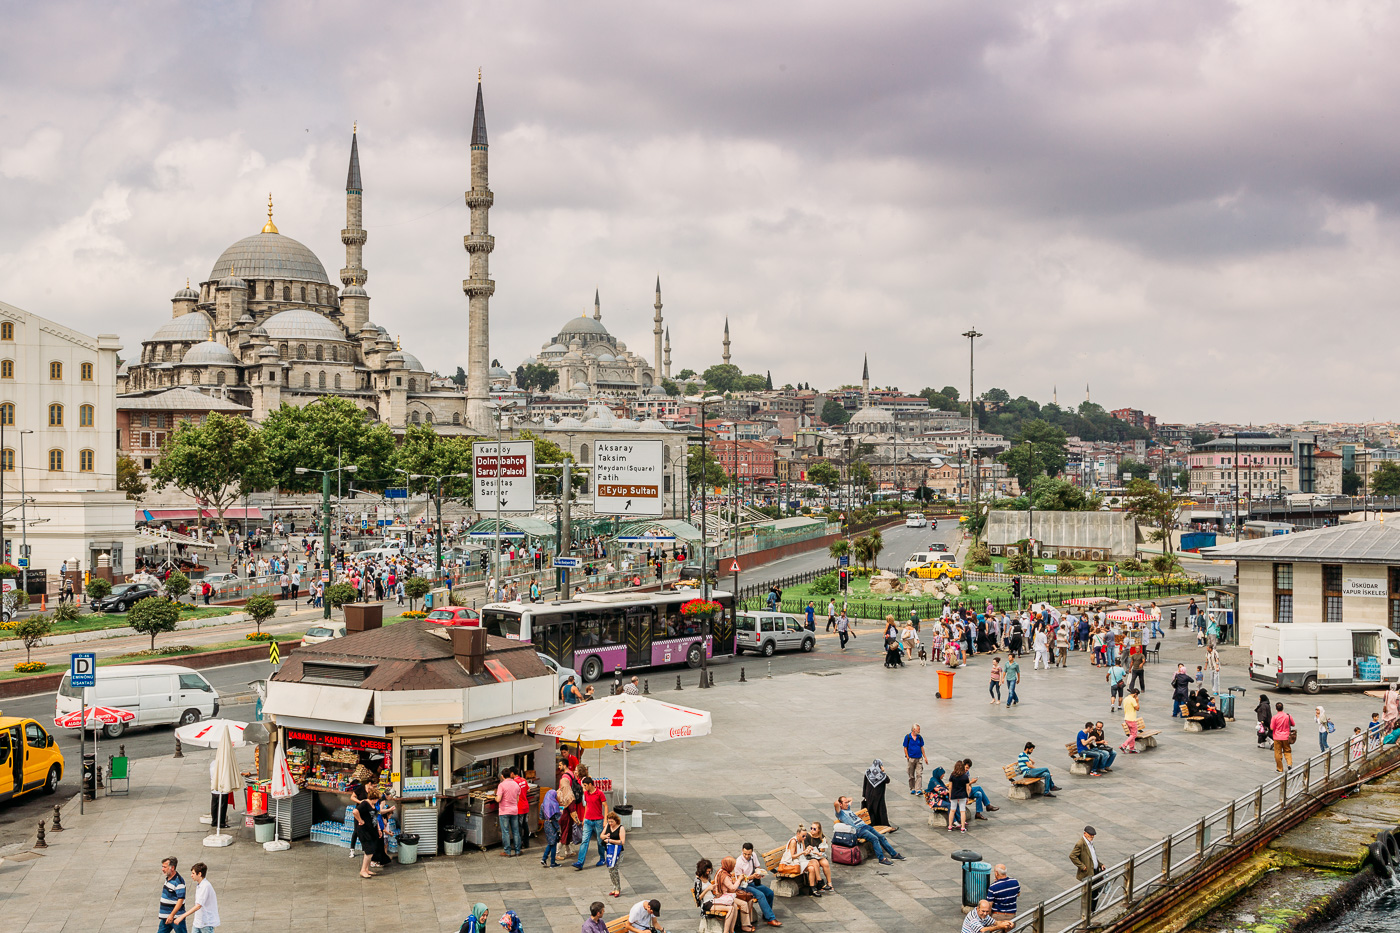 Exploring the Yeni Cami mosque at the Spice Bazaar